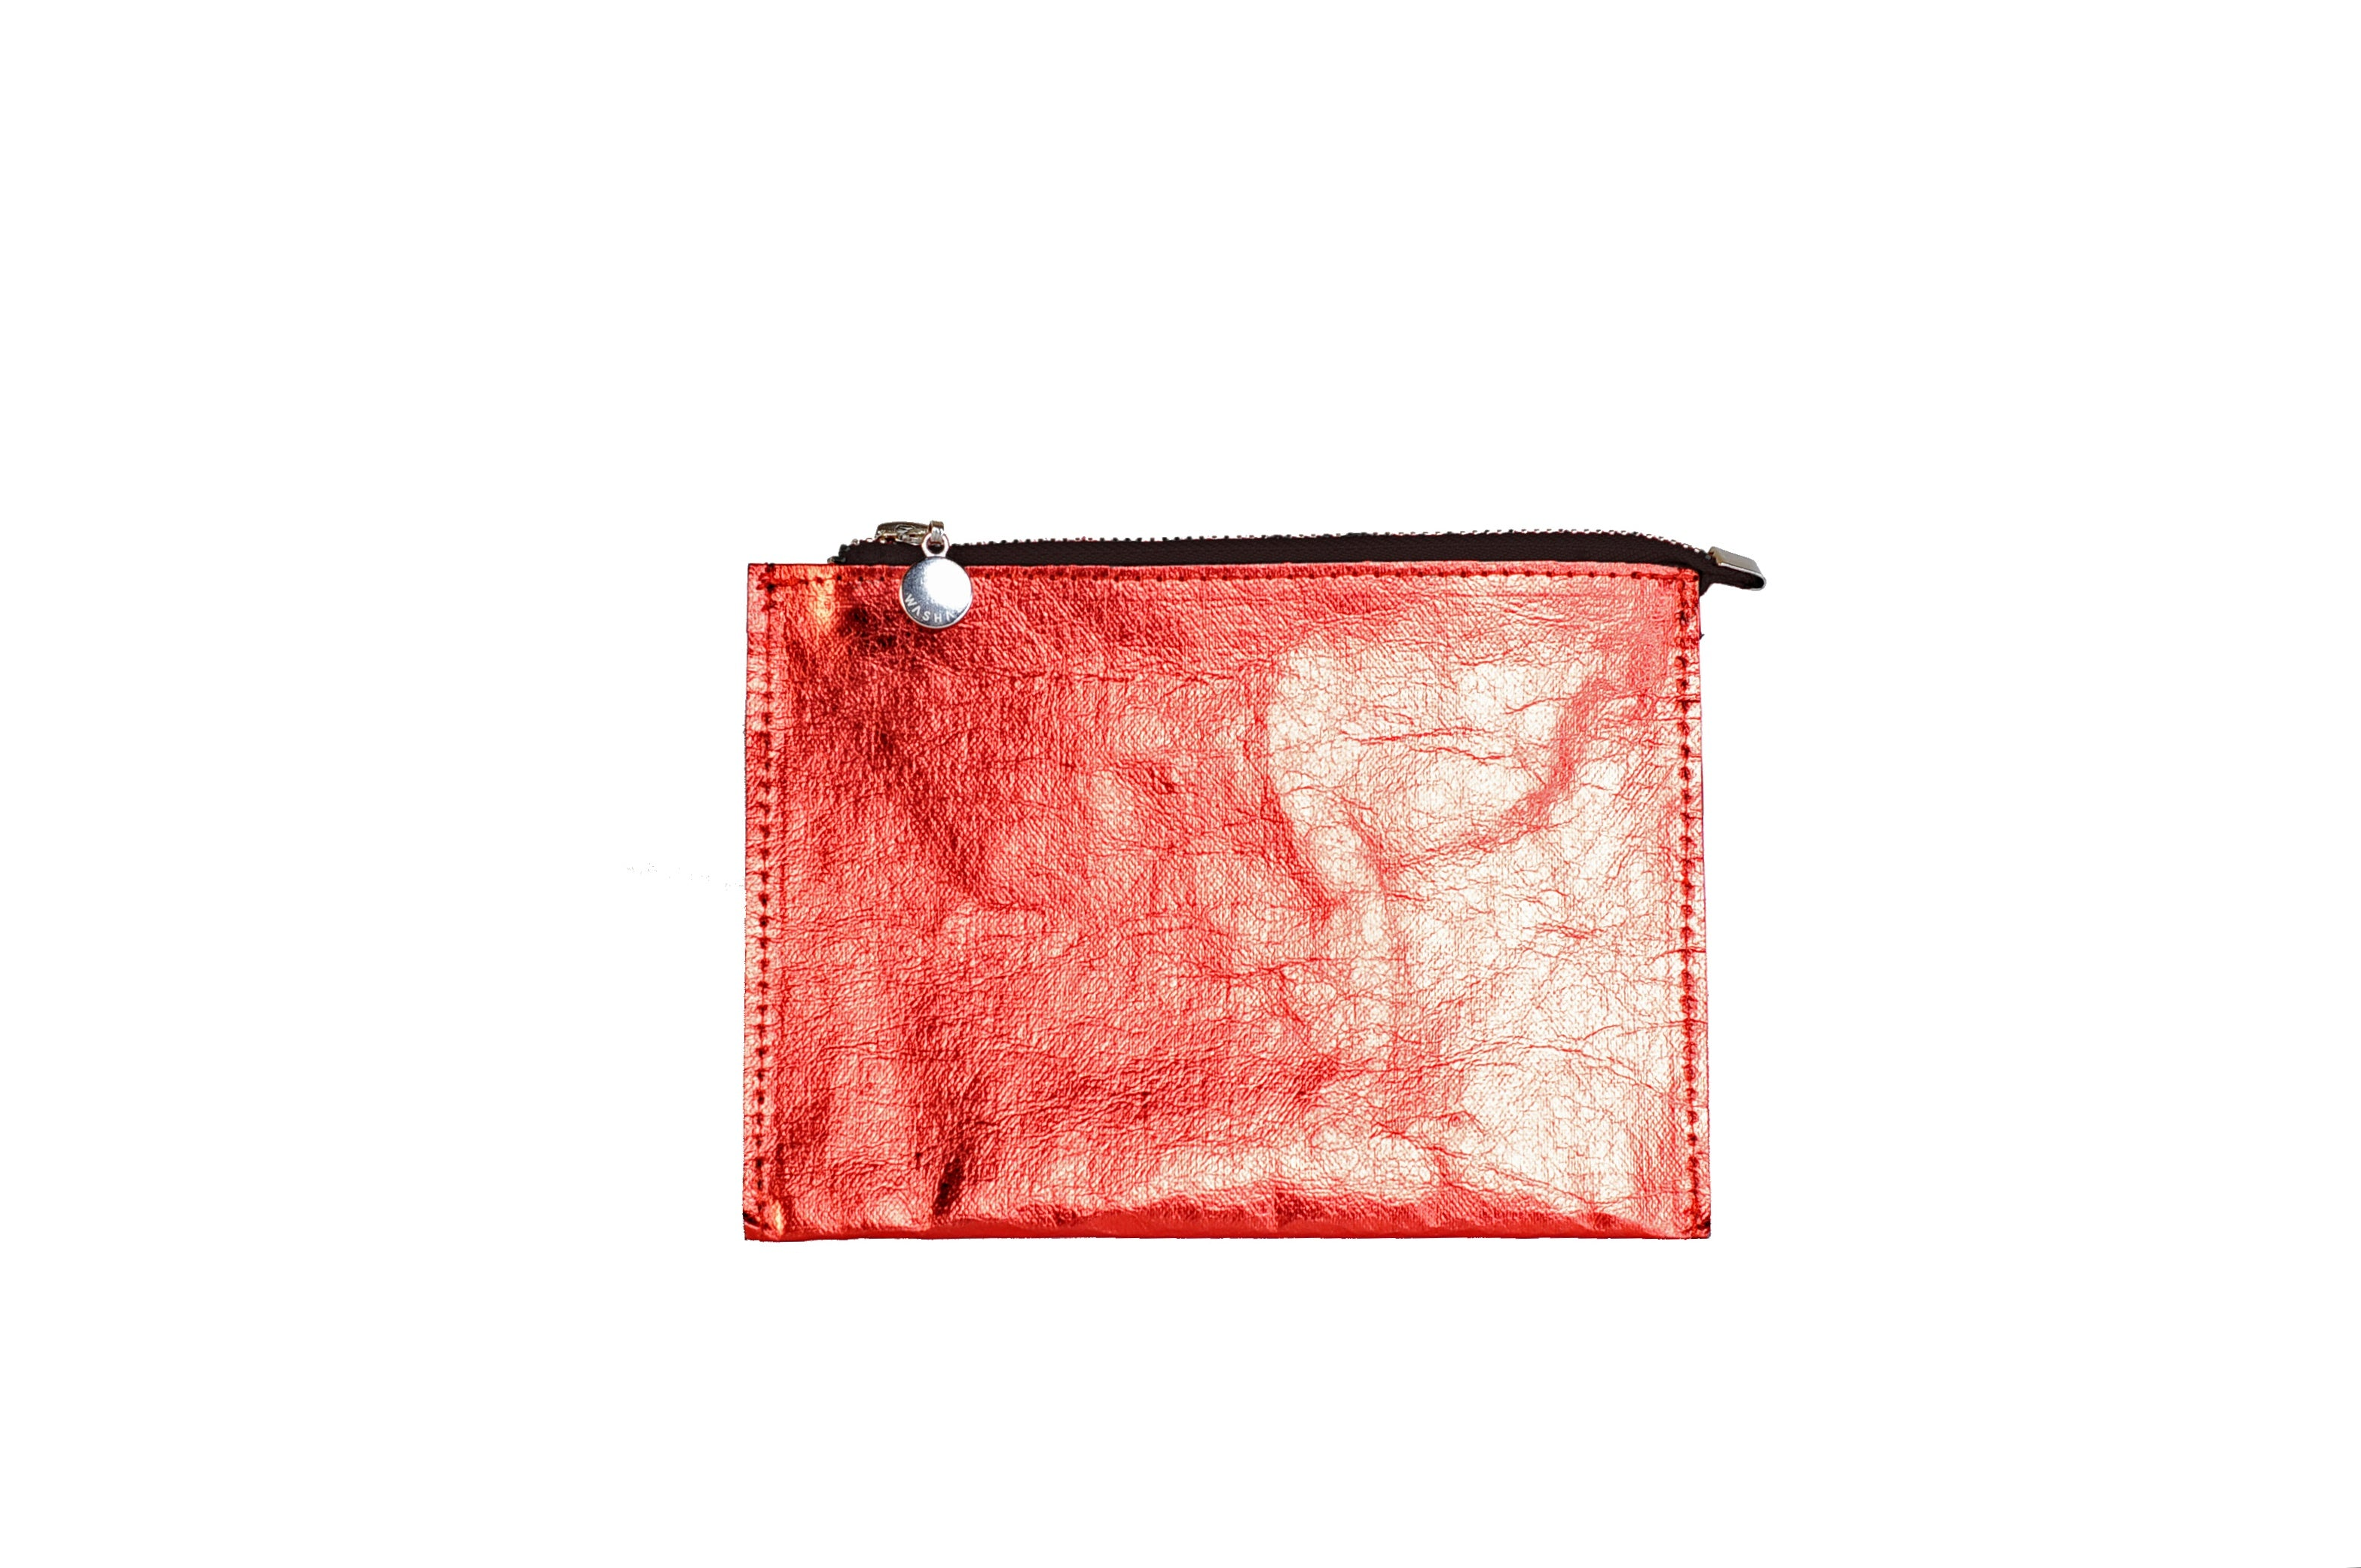 SHINY RED POUCH